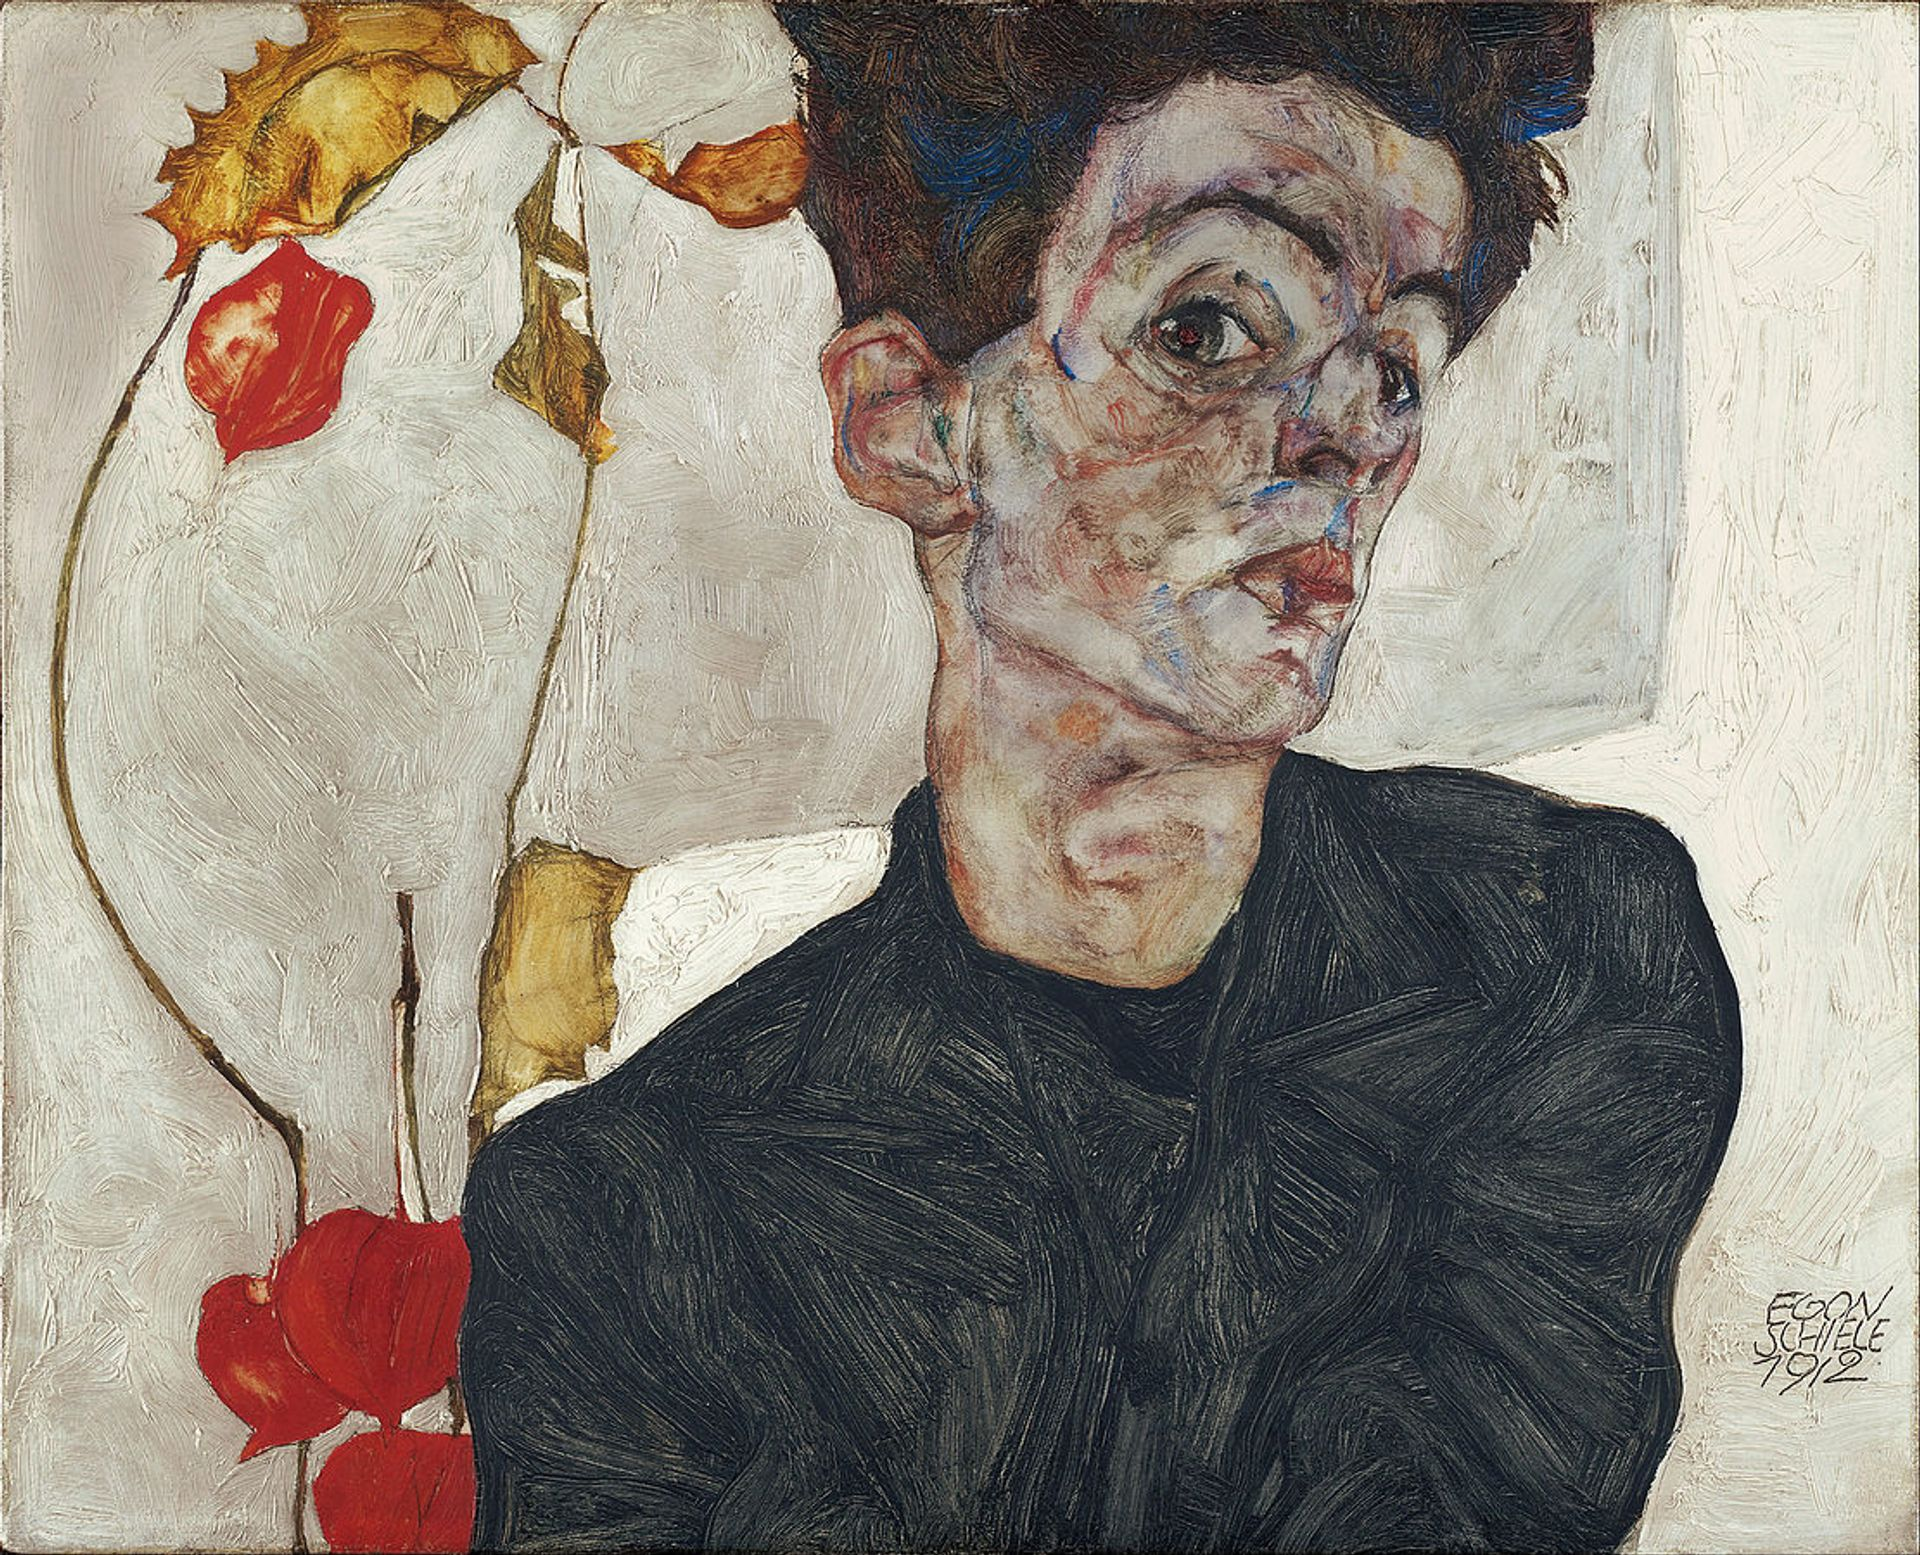 A self-portrait by the Austrian artist Egon Schiele. This painting is not among the disputed works commons.wikimedia.org